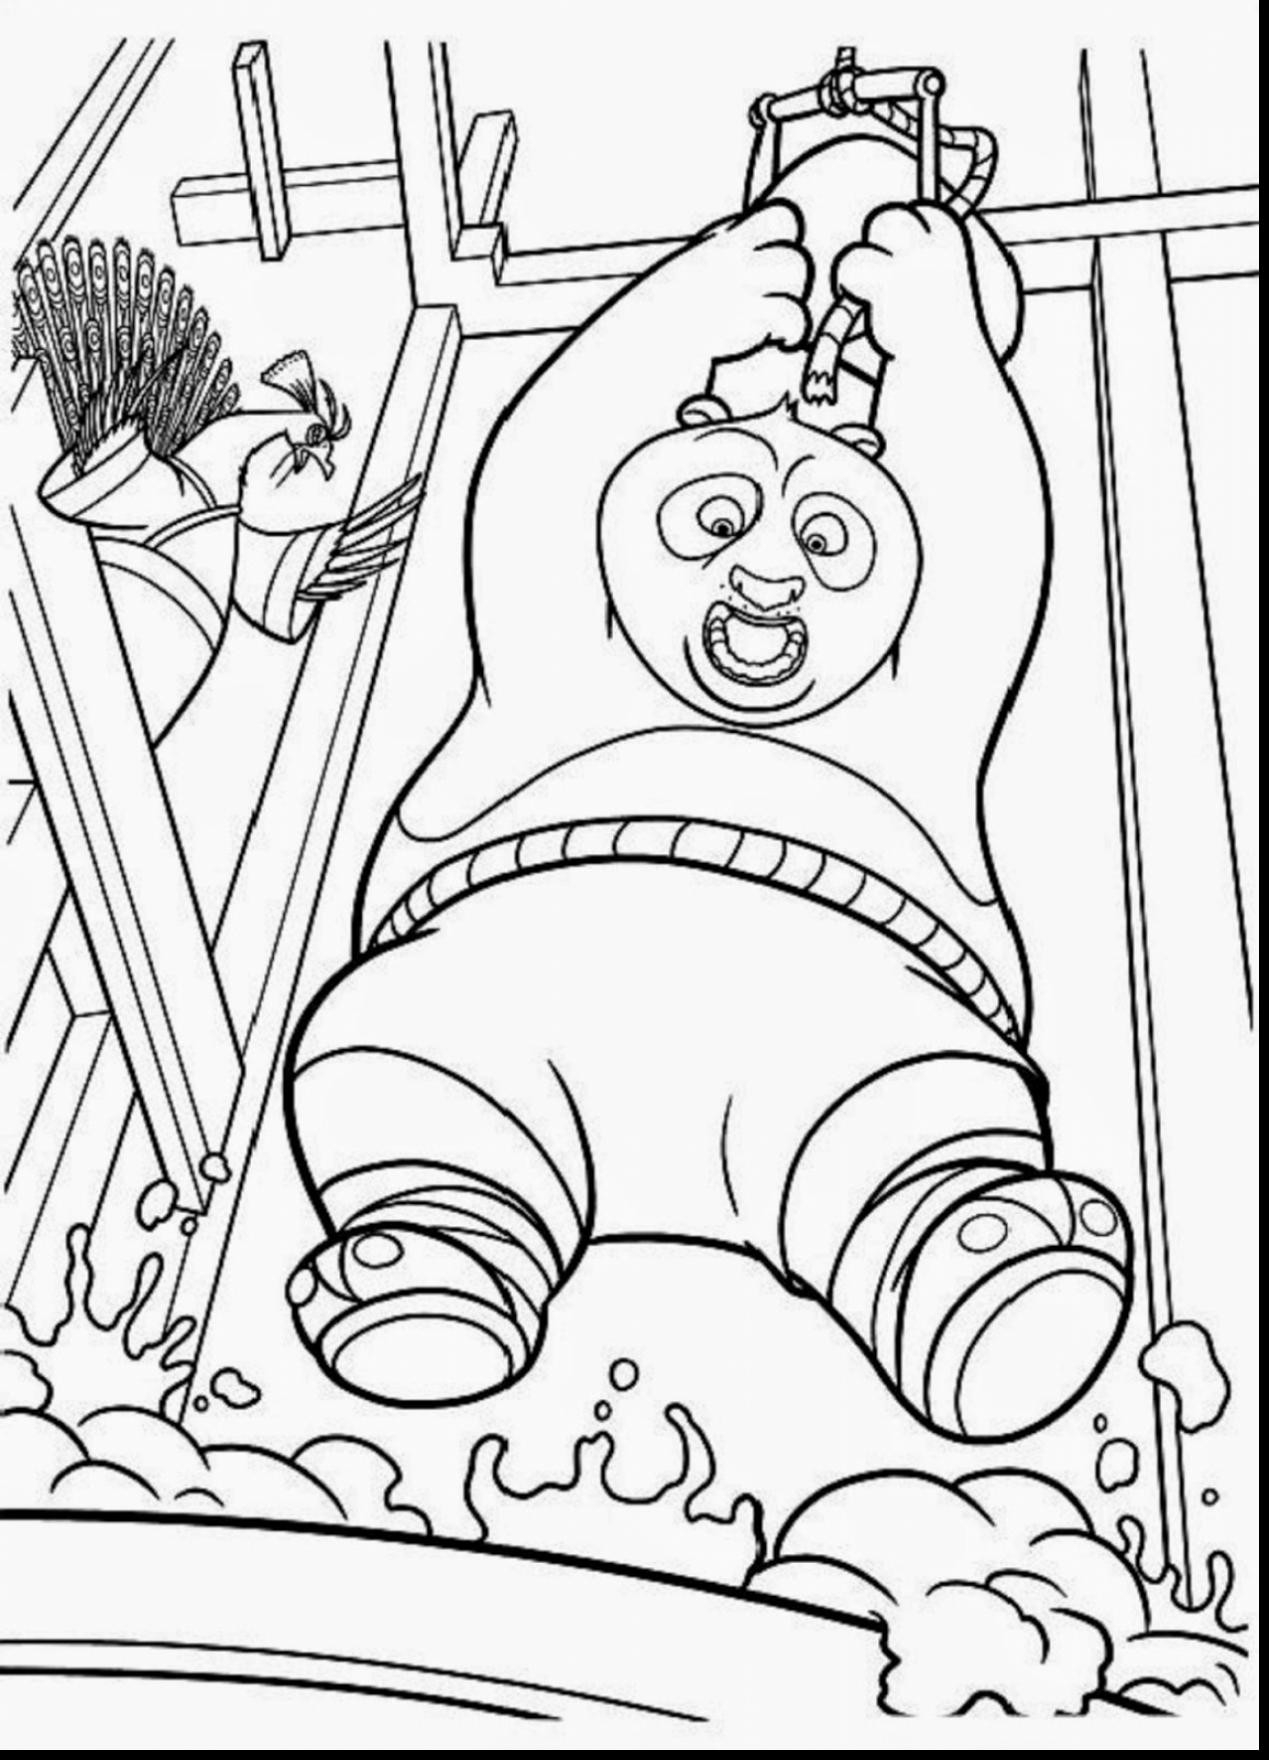 1269x1760 Kung Fu Panda Coloring Pages For Kids Best Terrific Kung Fu Free